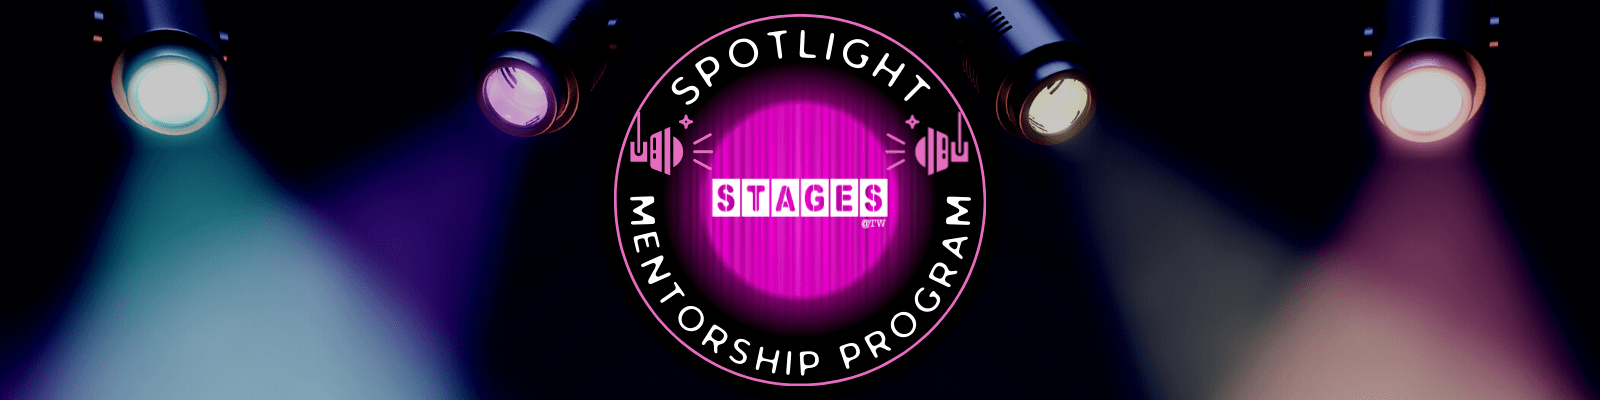 SPOTLIGHT: Youth Mentorship Program